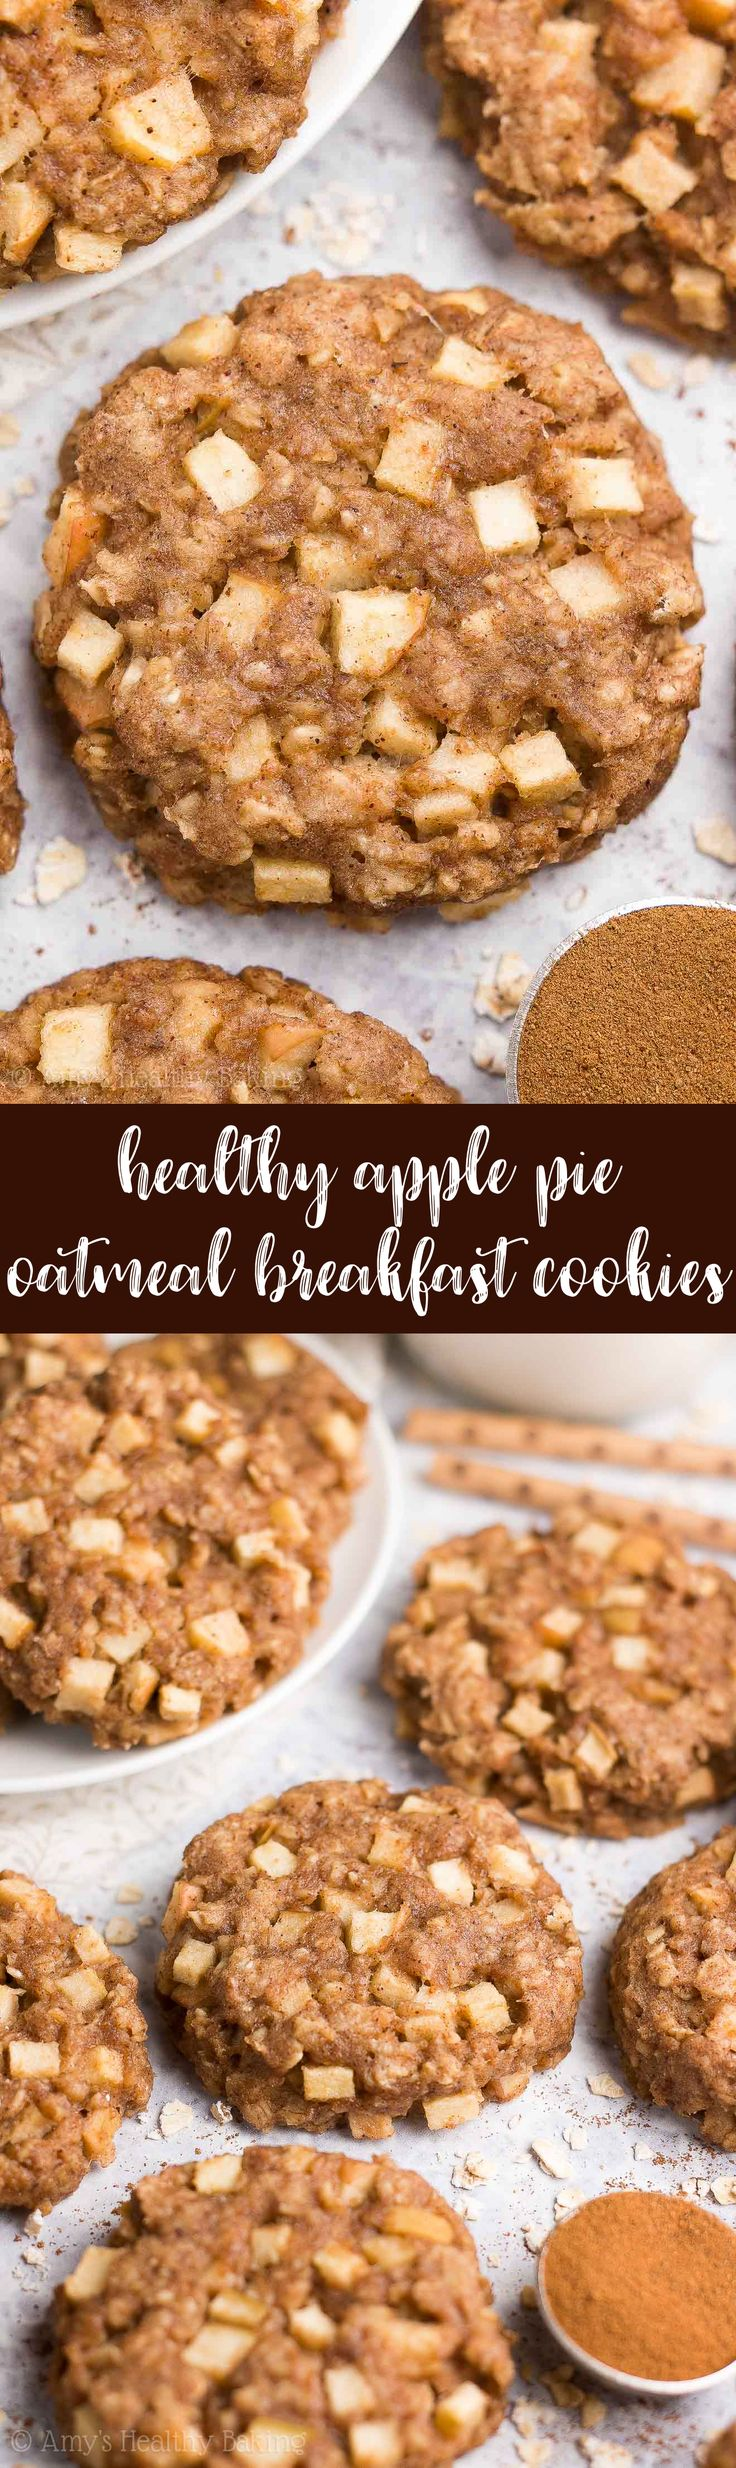 {HEALTHY!} Apple Pie Oatmeal Breakfast Cookies -- only 71 calories! Soft, chewy & so easy to make! They're perfect for kids & quick grab-and-go breakfasts! (And they freeze well too!) AD #healthy #recipe #breakfast #oatmealcookies